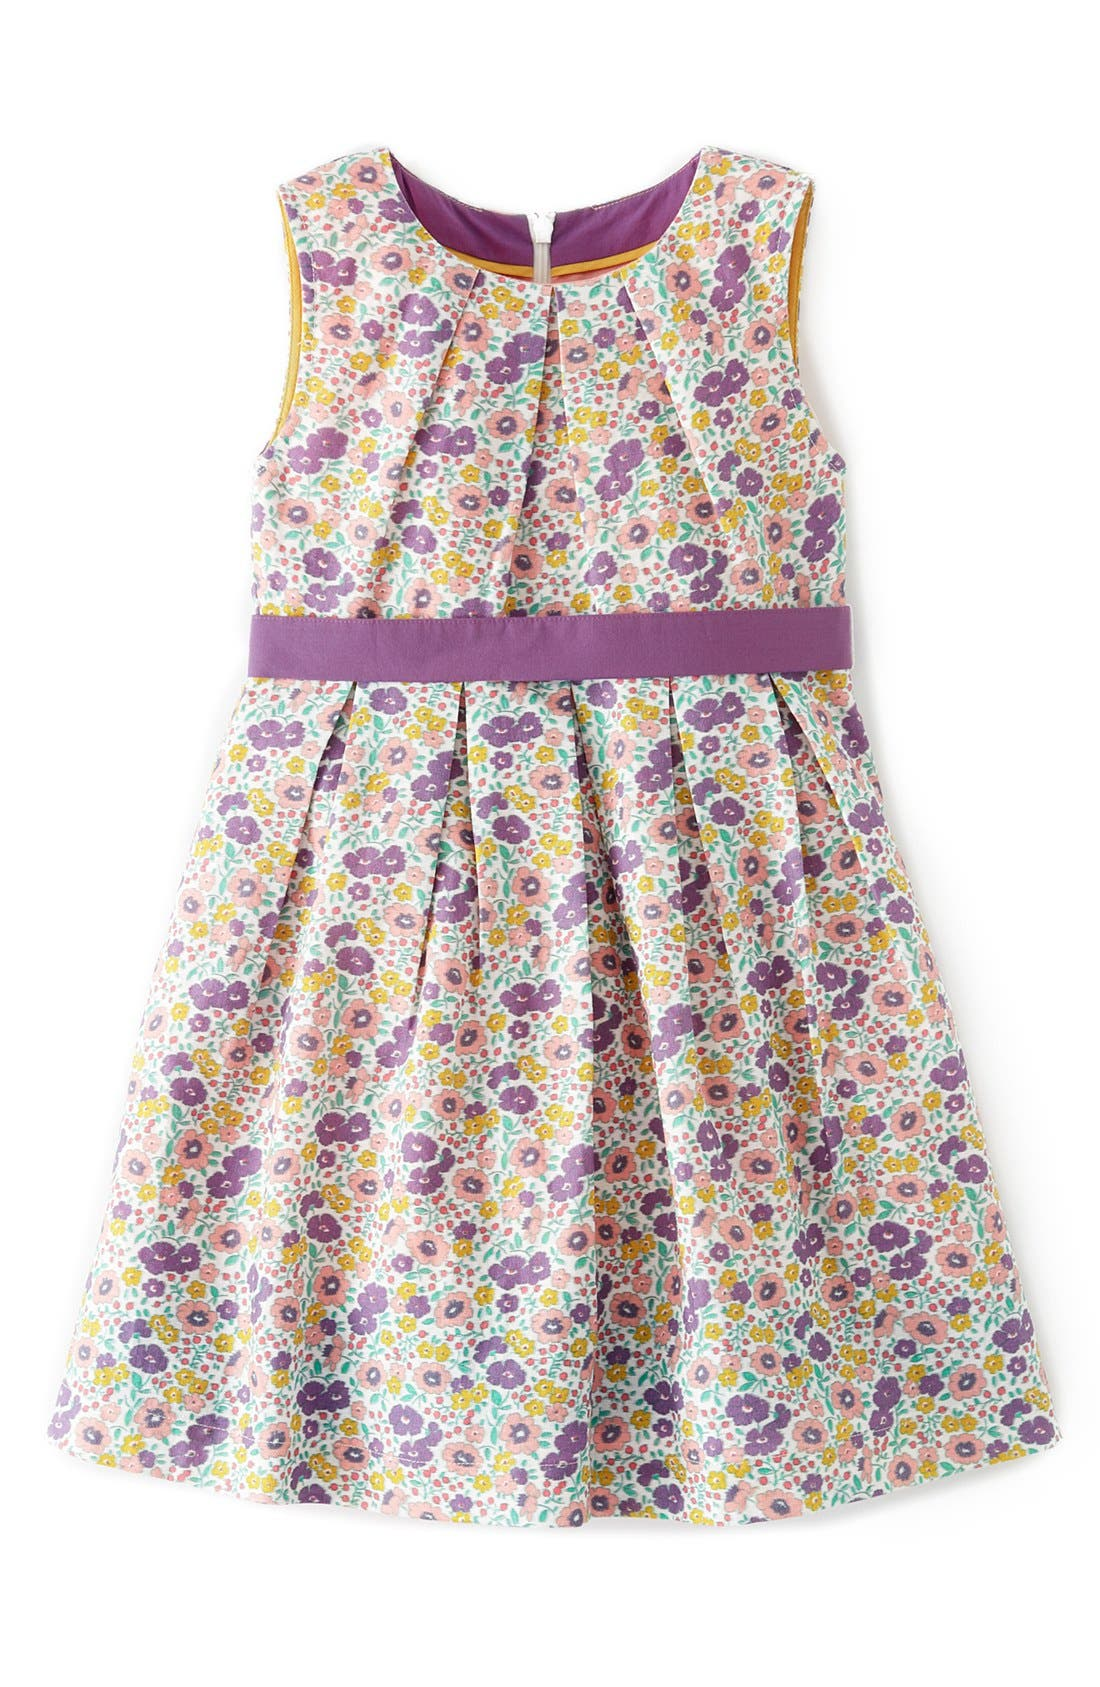 Alternate Image 1 Selected - Mini Boden 'Vintage' Dress (Little Girls & Big Girls)